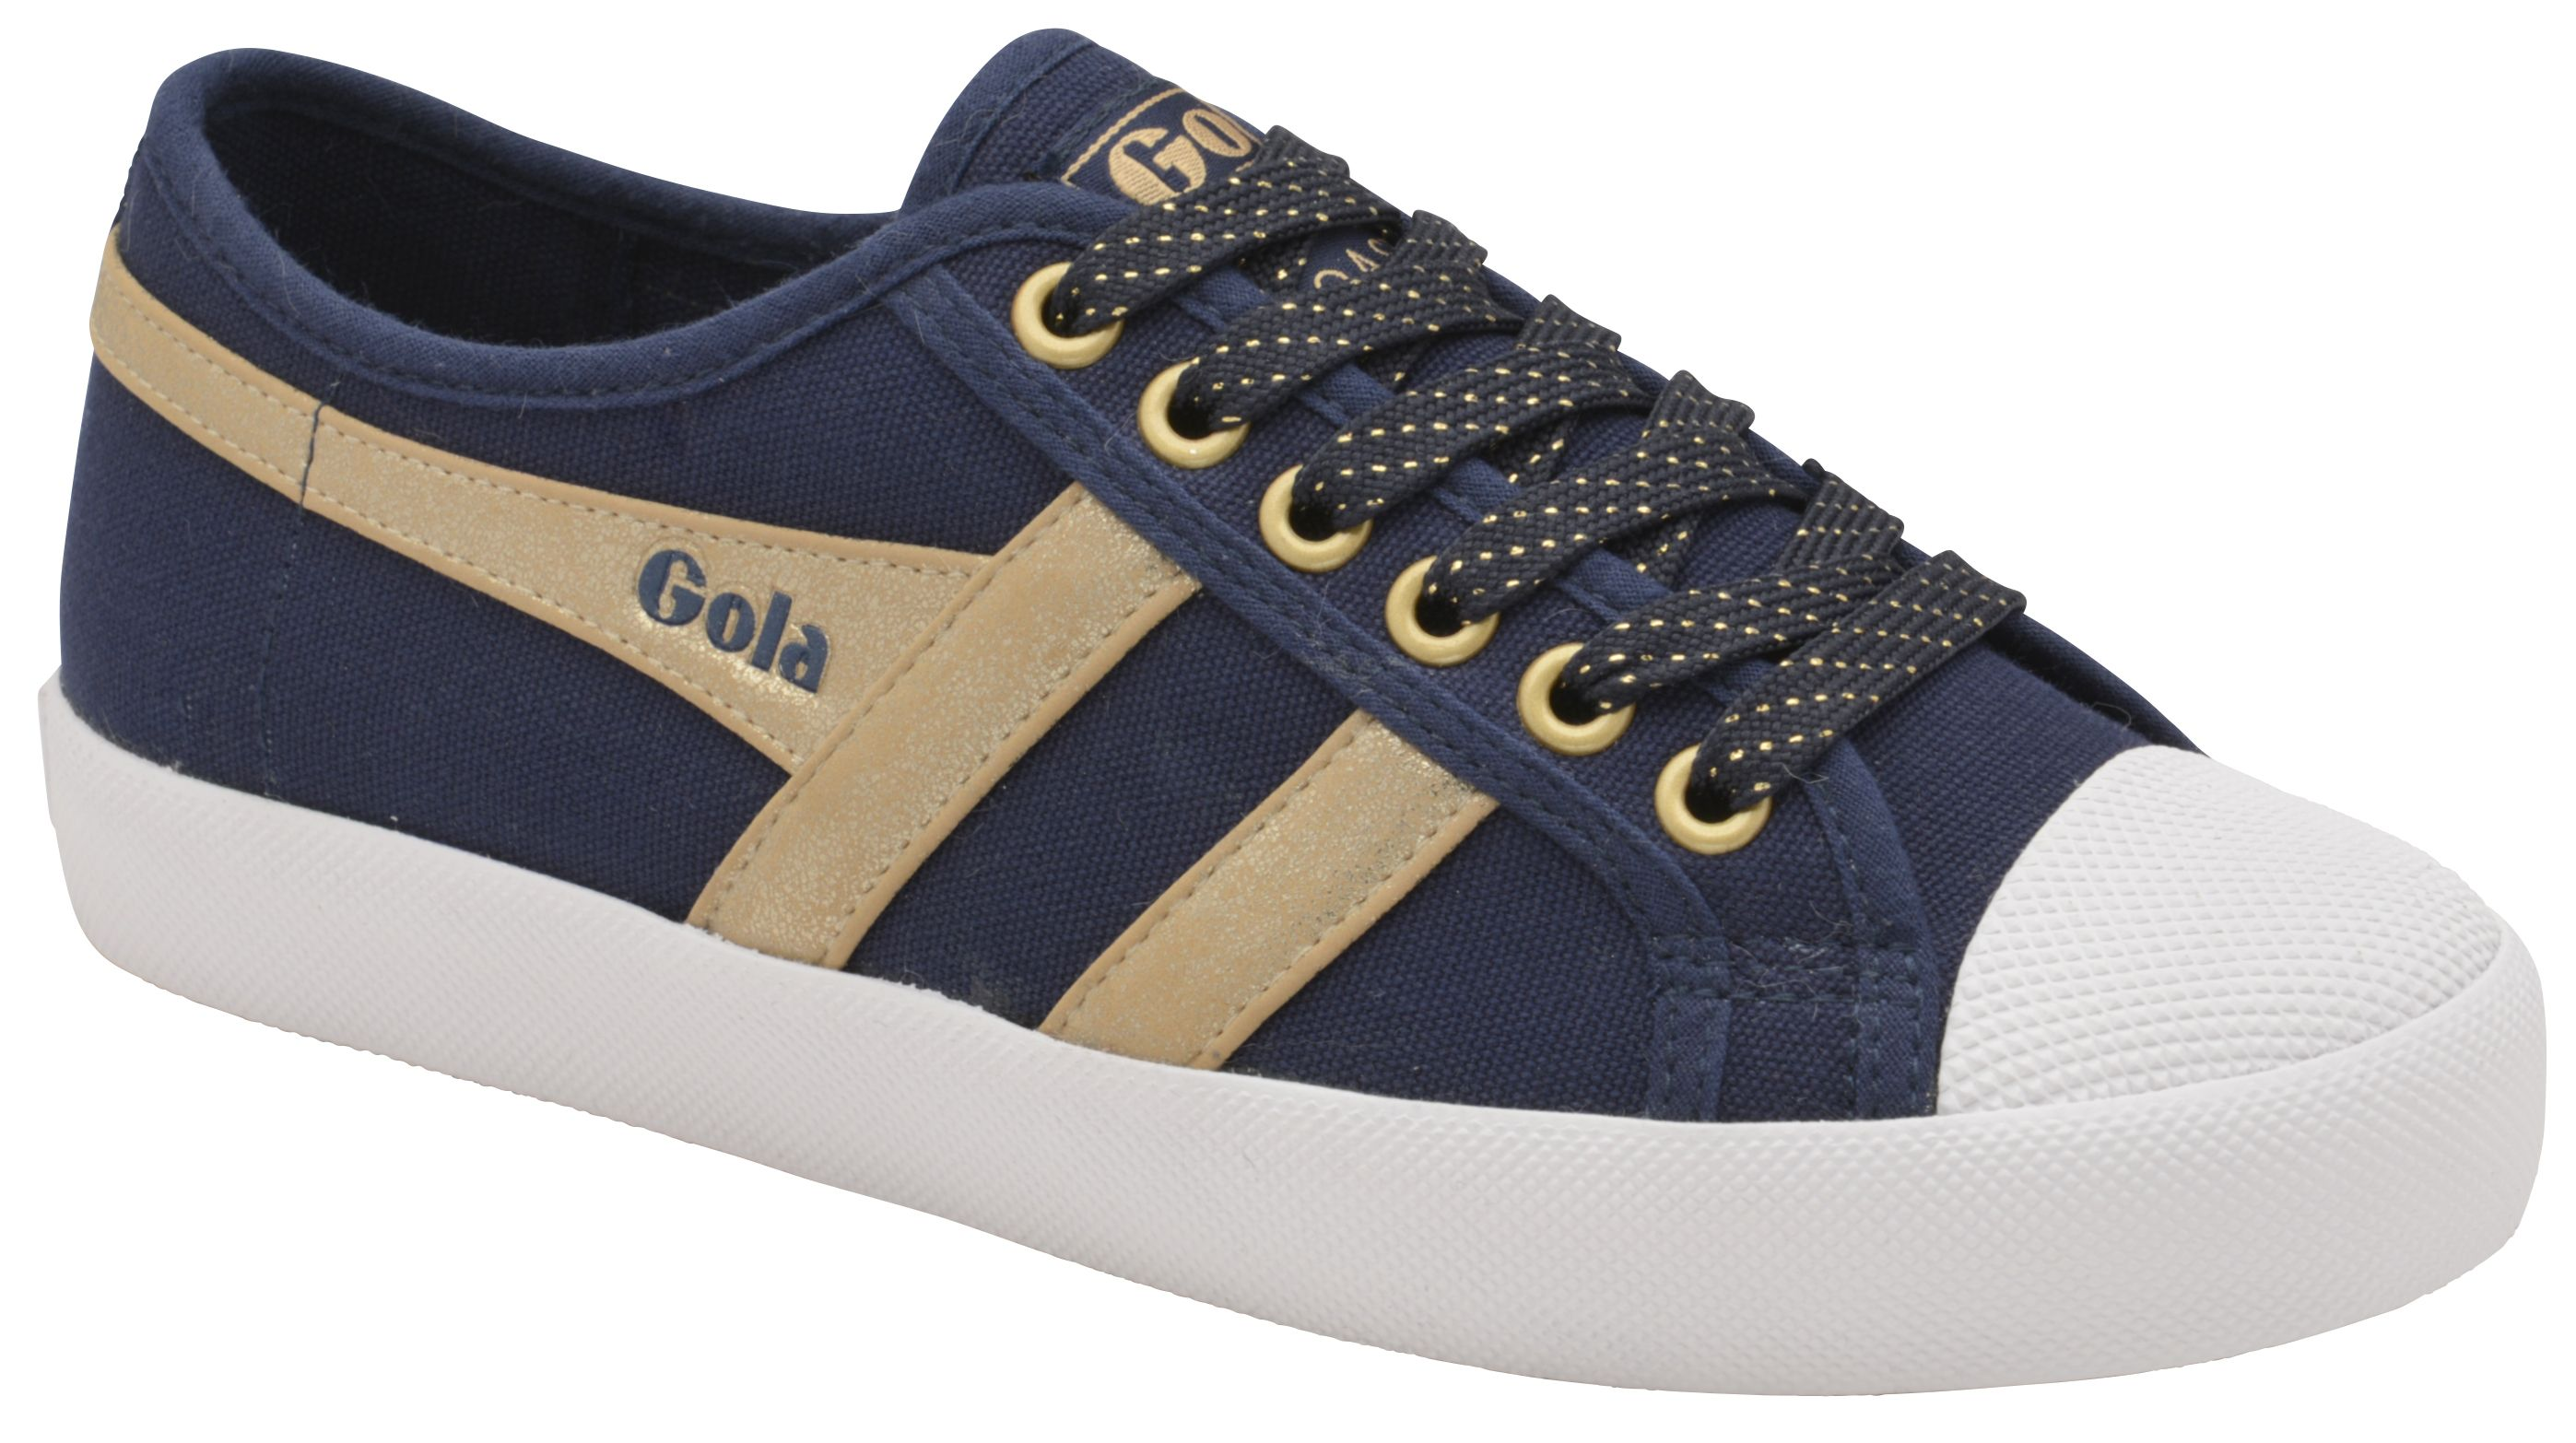 Gola Coaster Mirror Lace Up Trainers, Blue